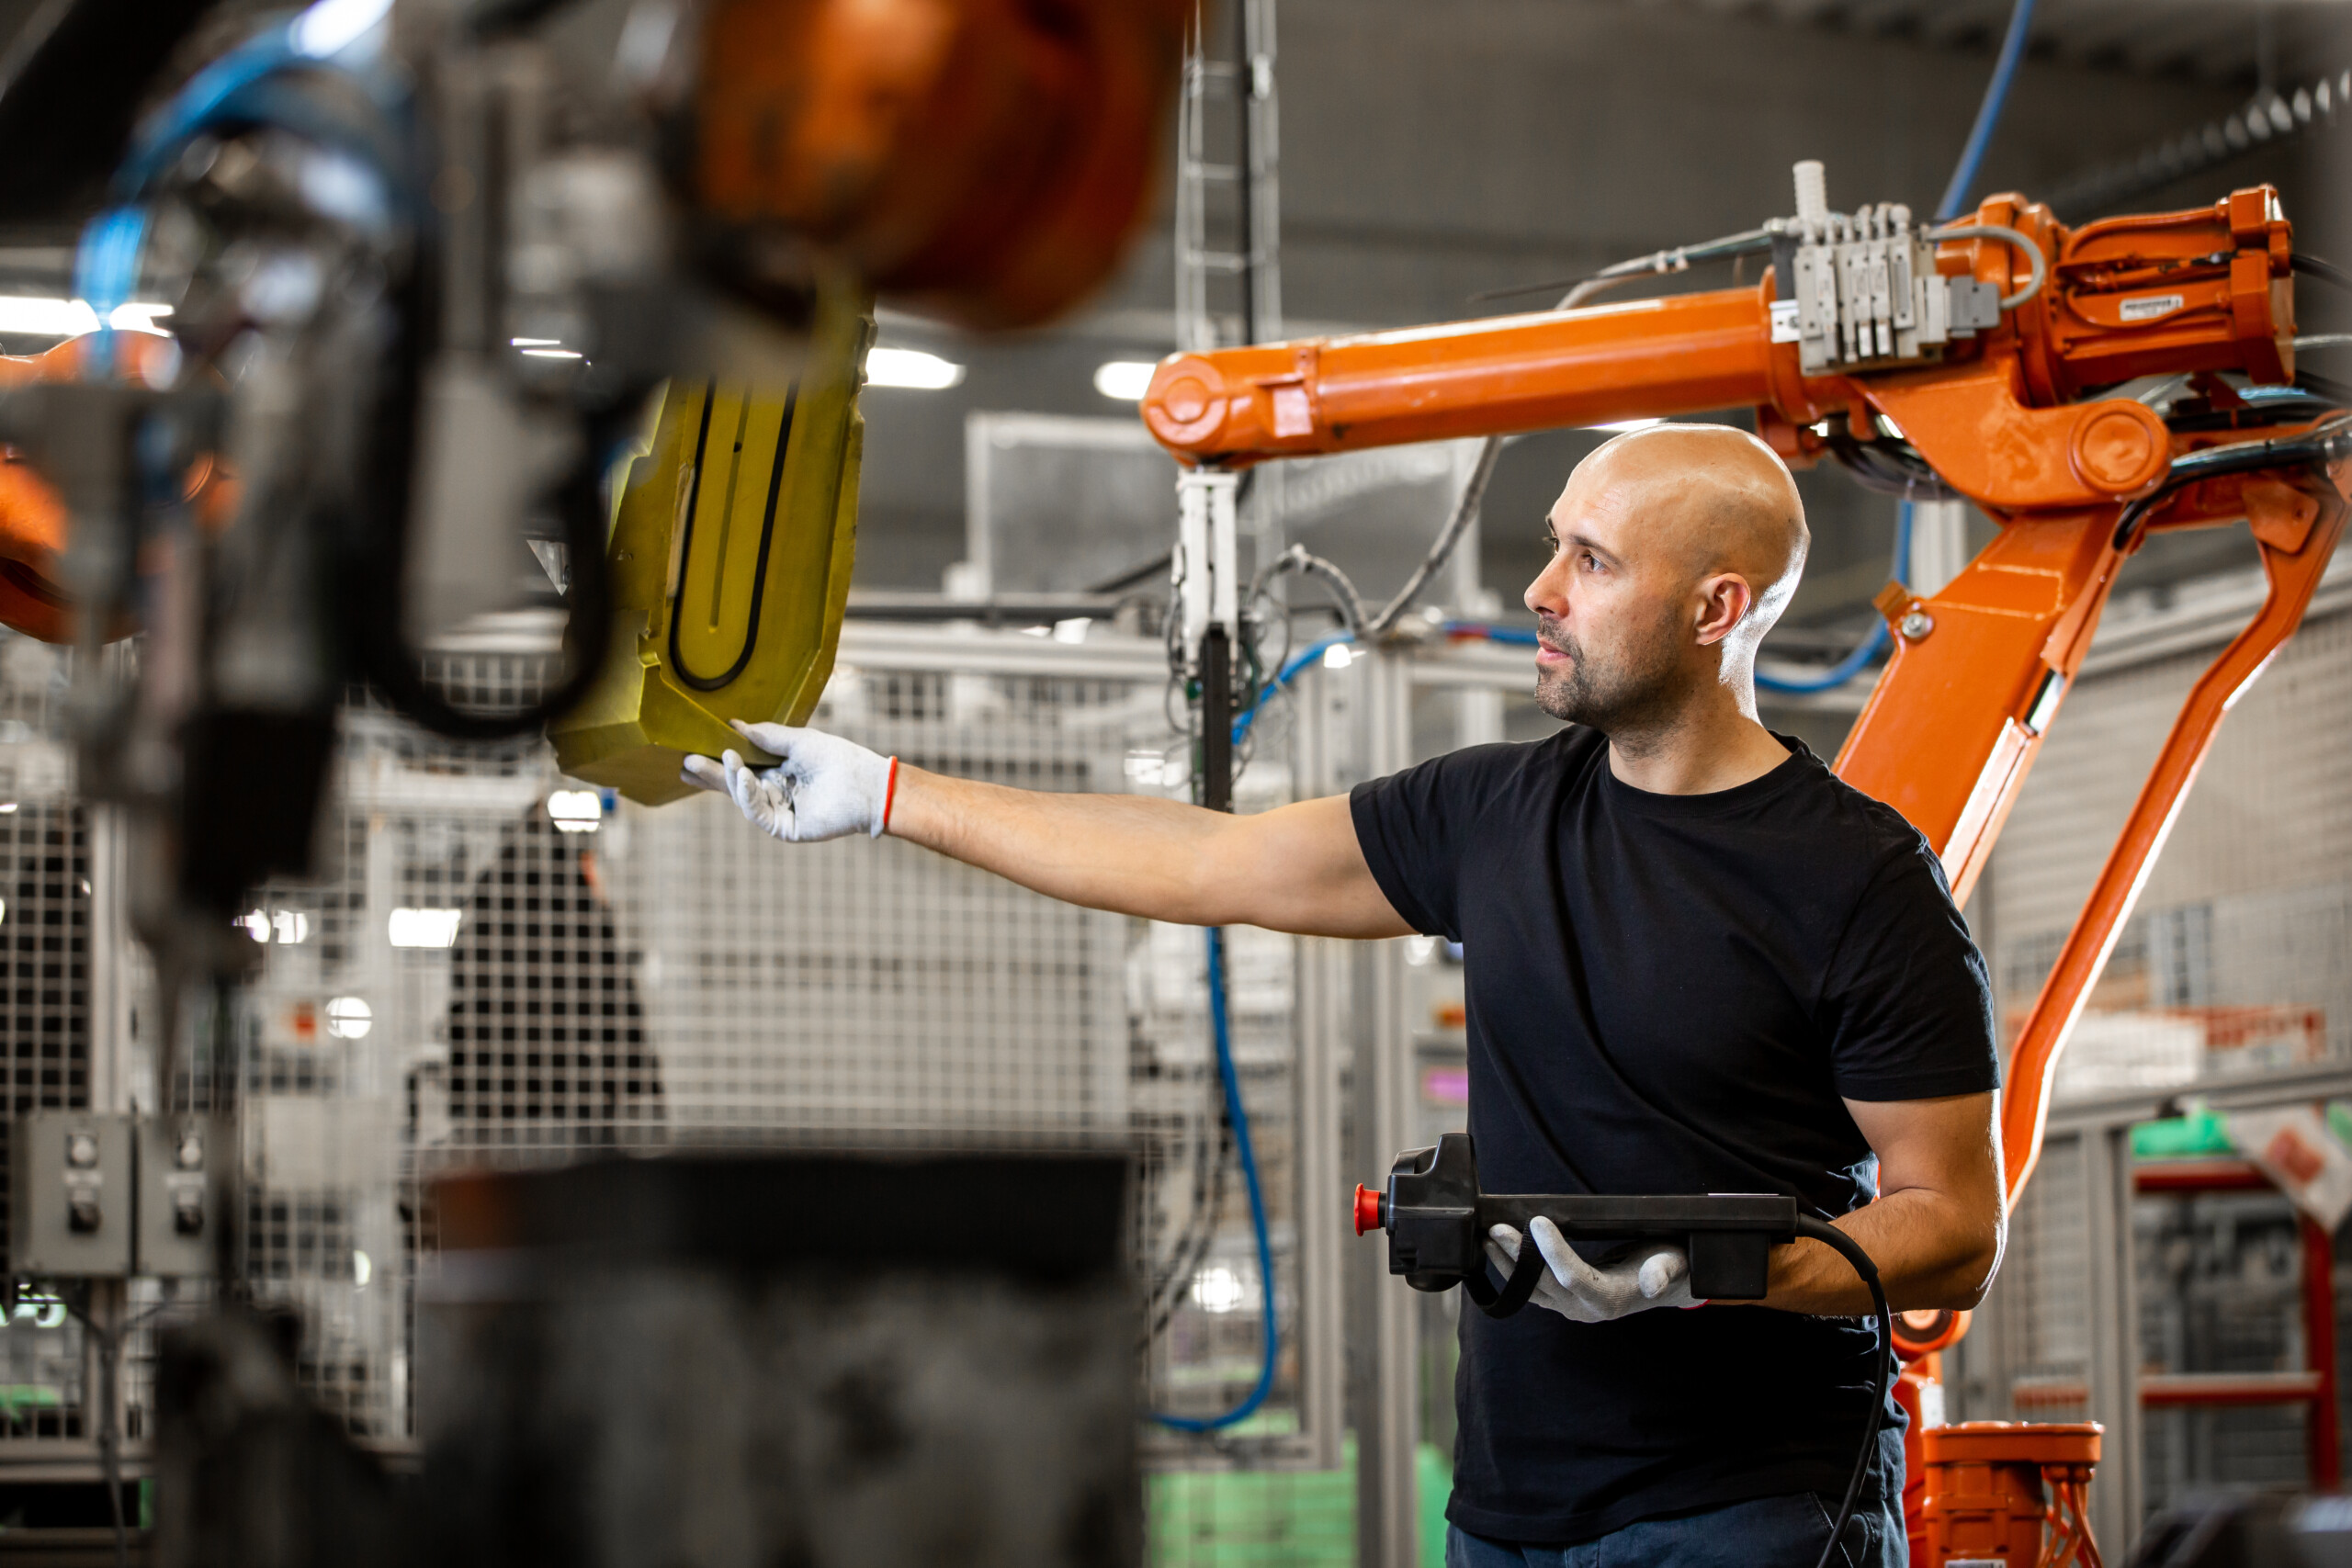 Engineer repairing an automatic robot amrs in automotive, smart